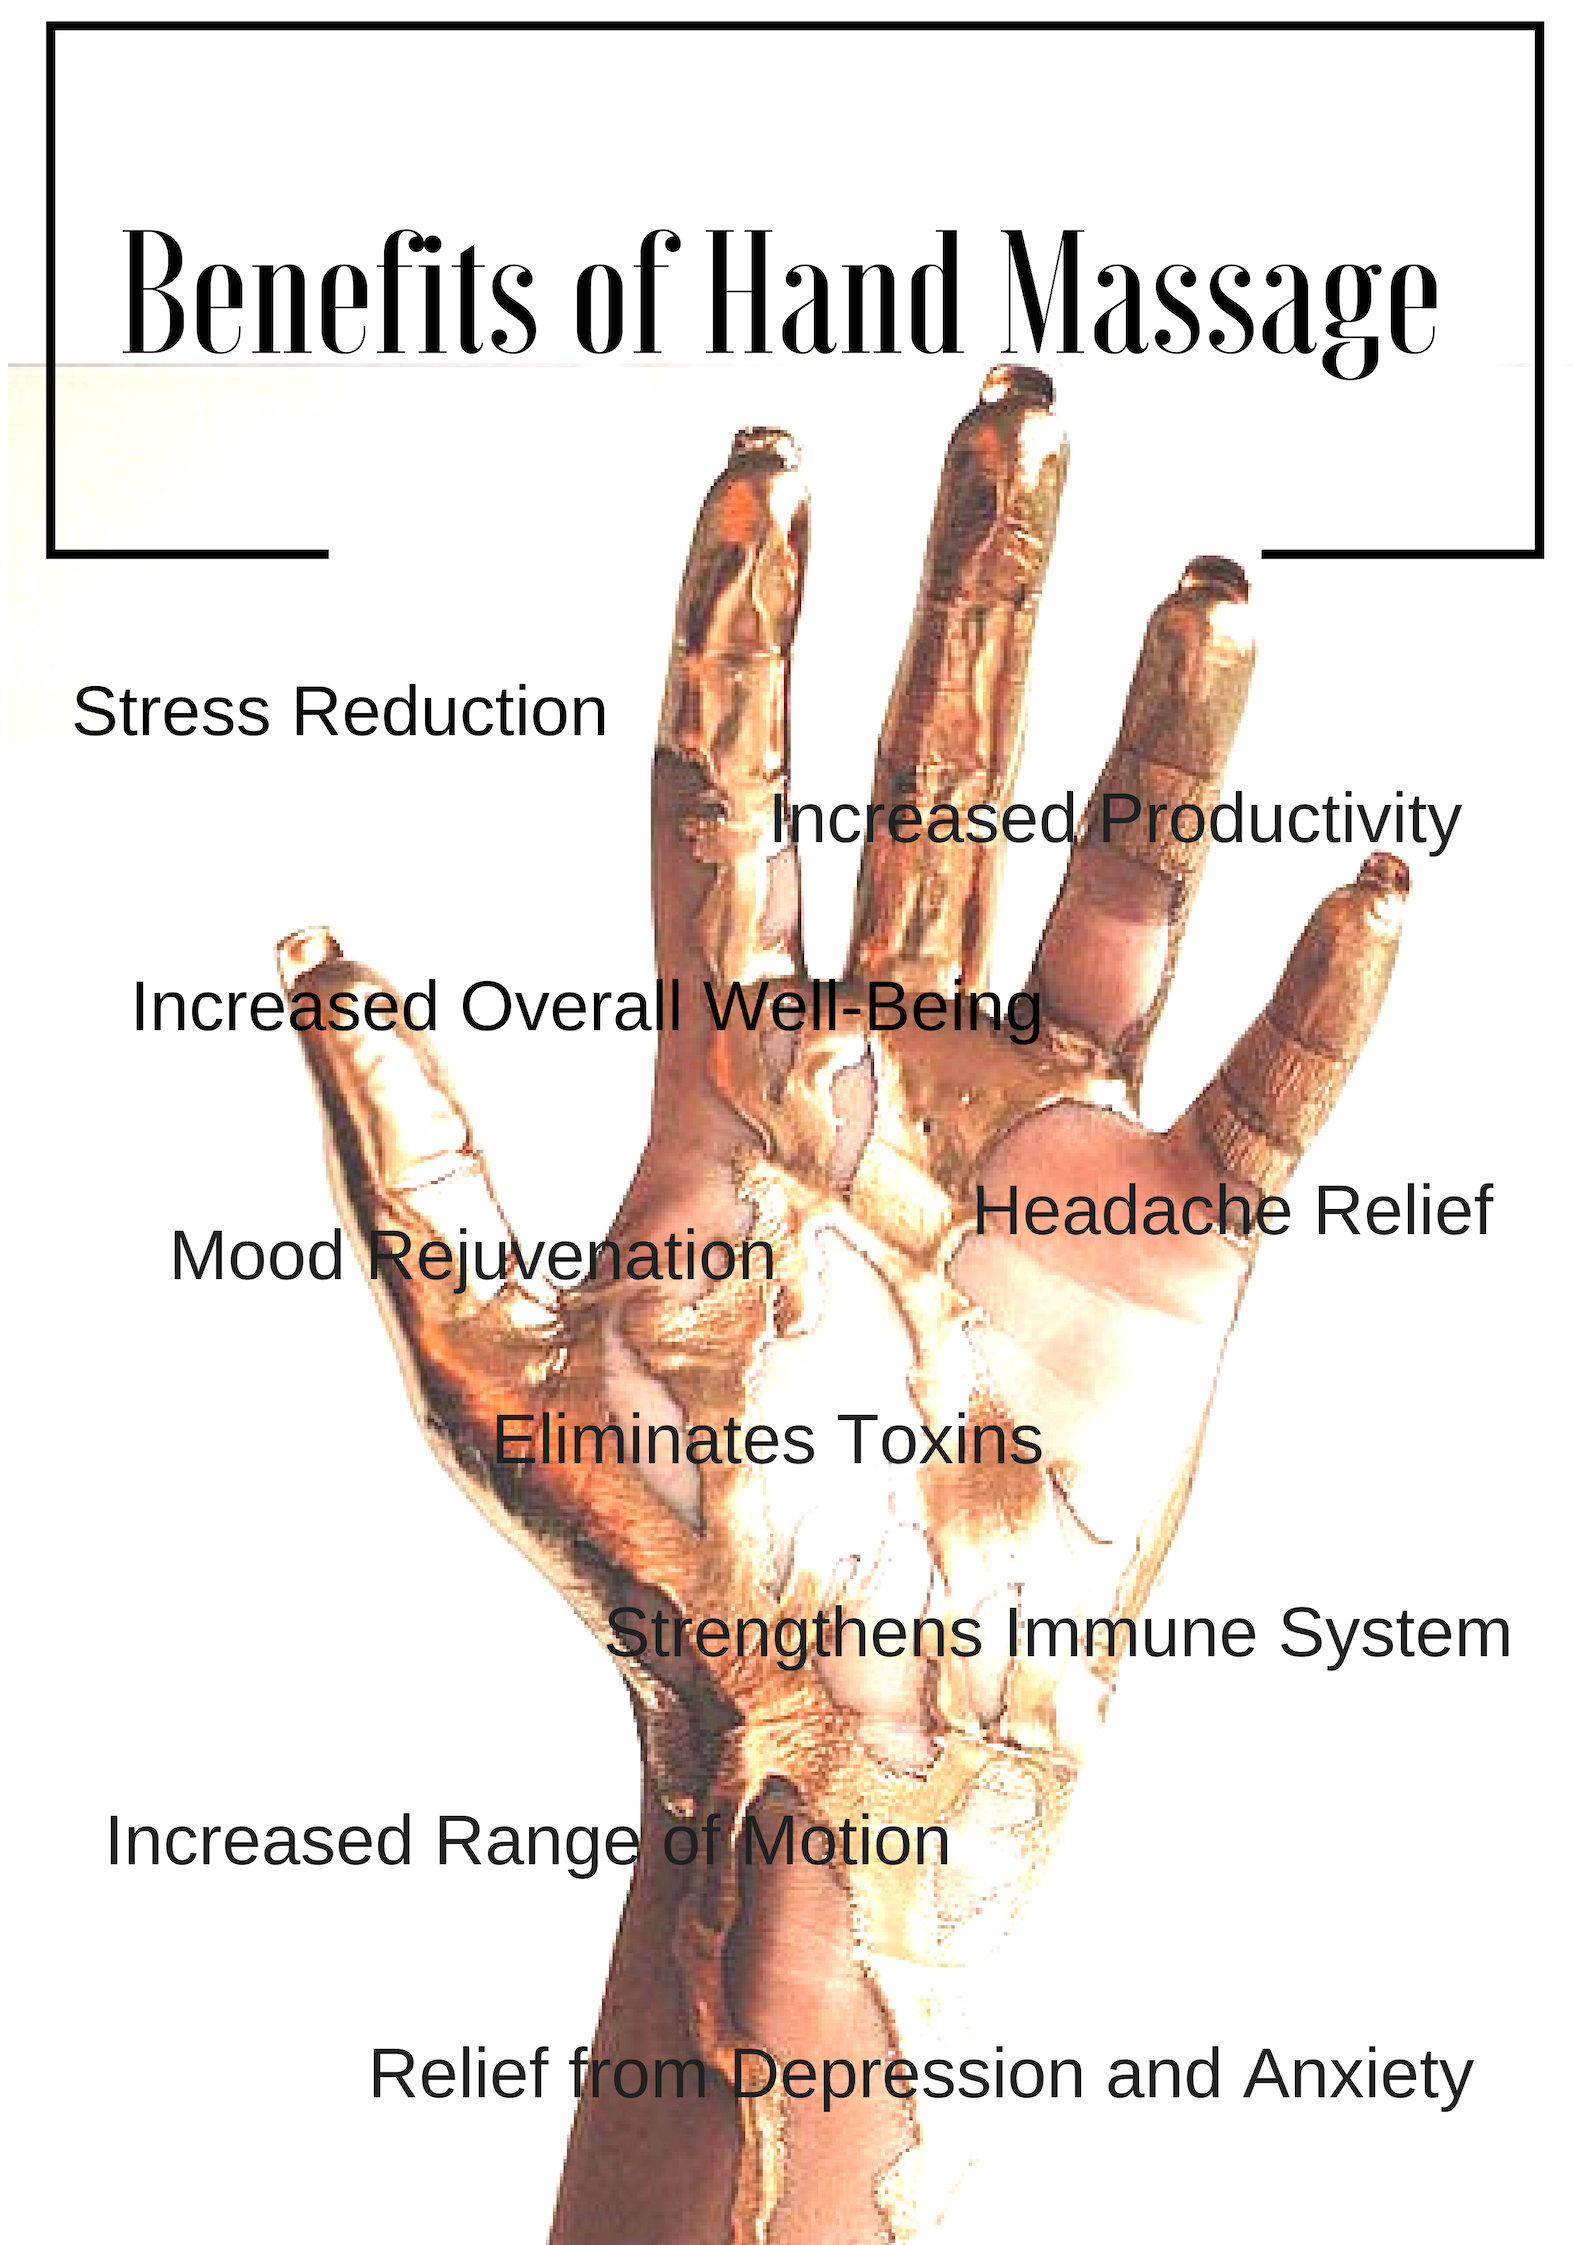 Benefits of Hand Massage.png